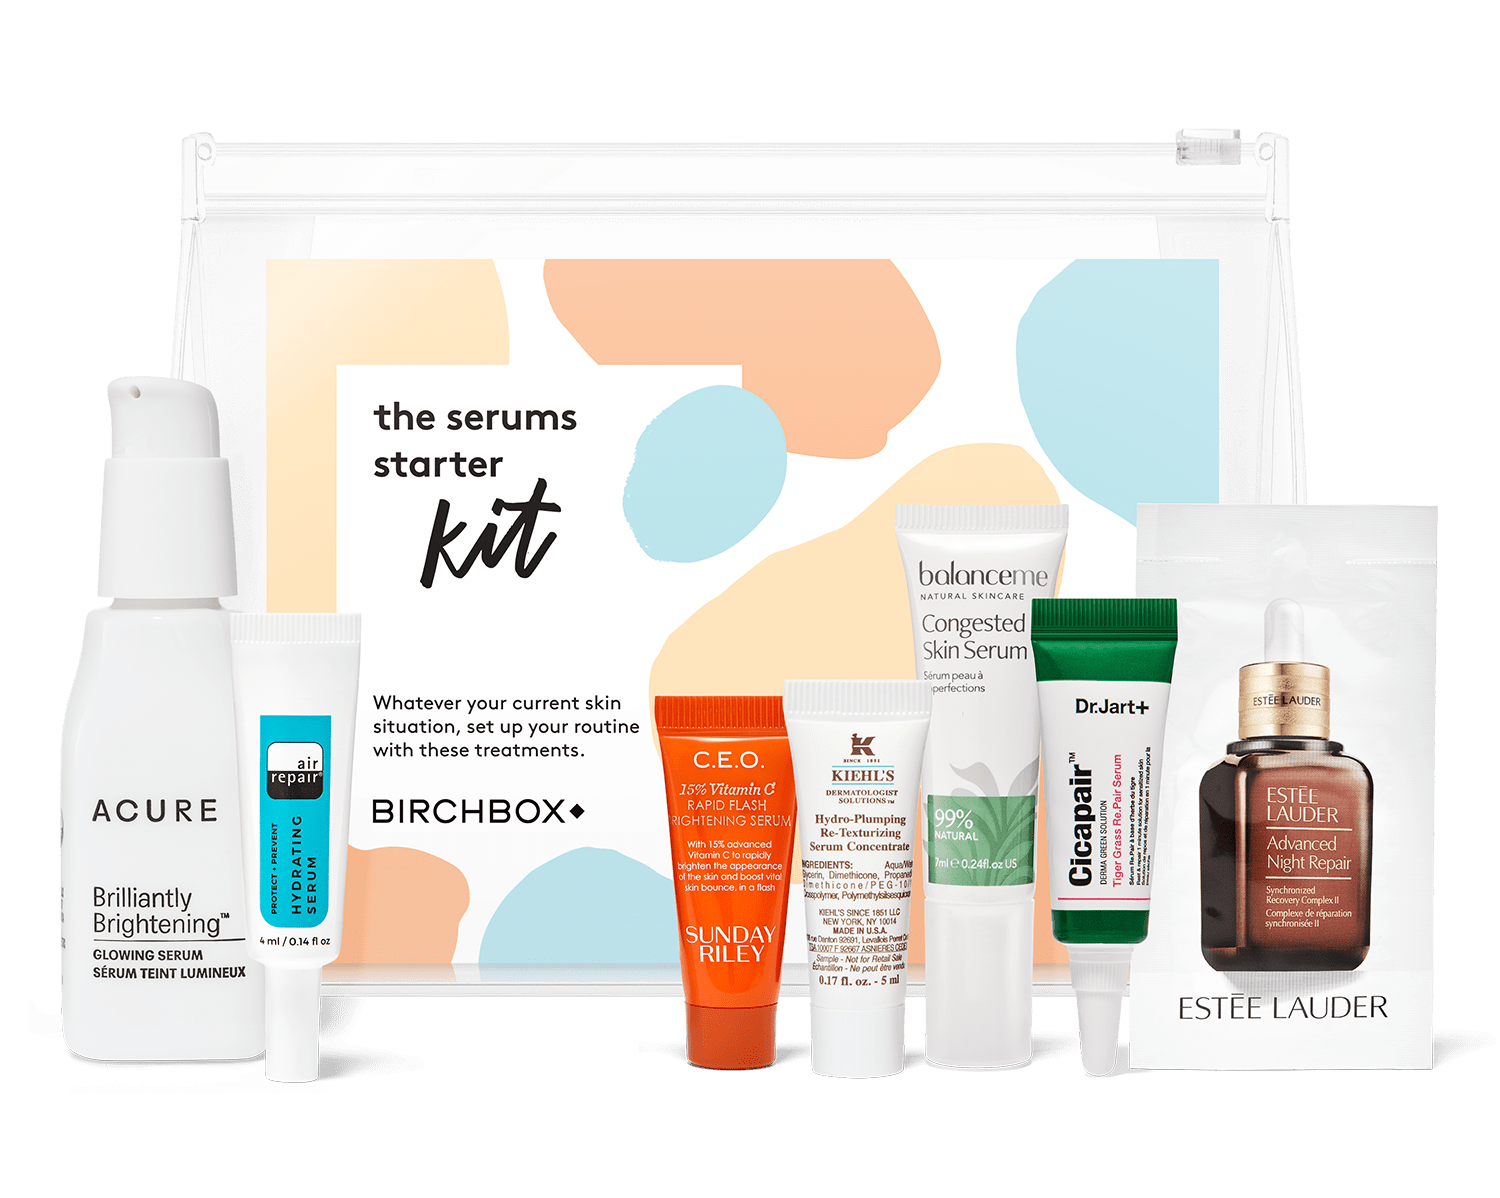 New Birchbox Kit + Free Gift Coupons – The Serums Starter Kit!